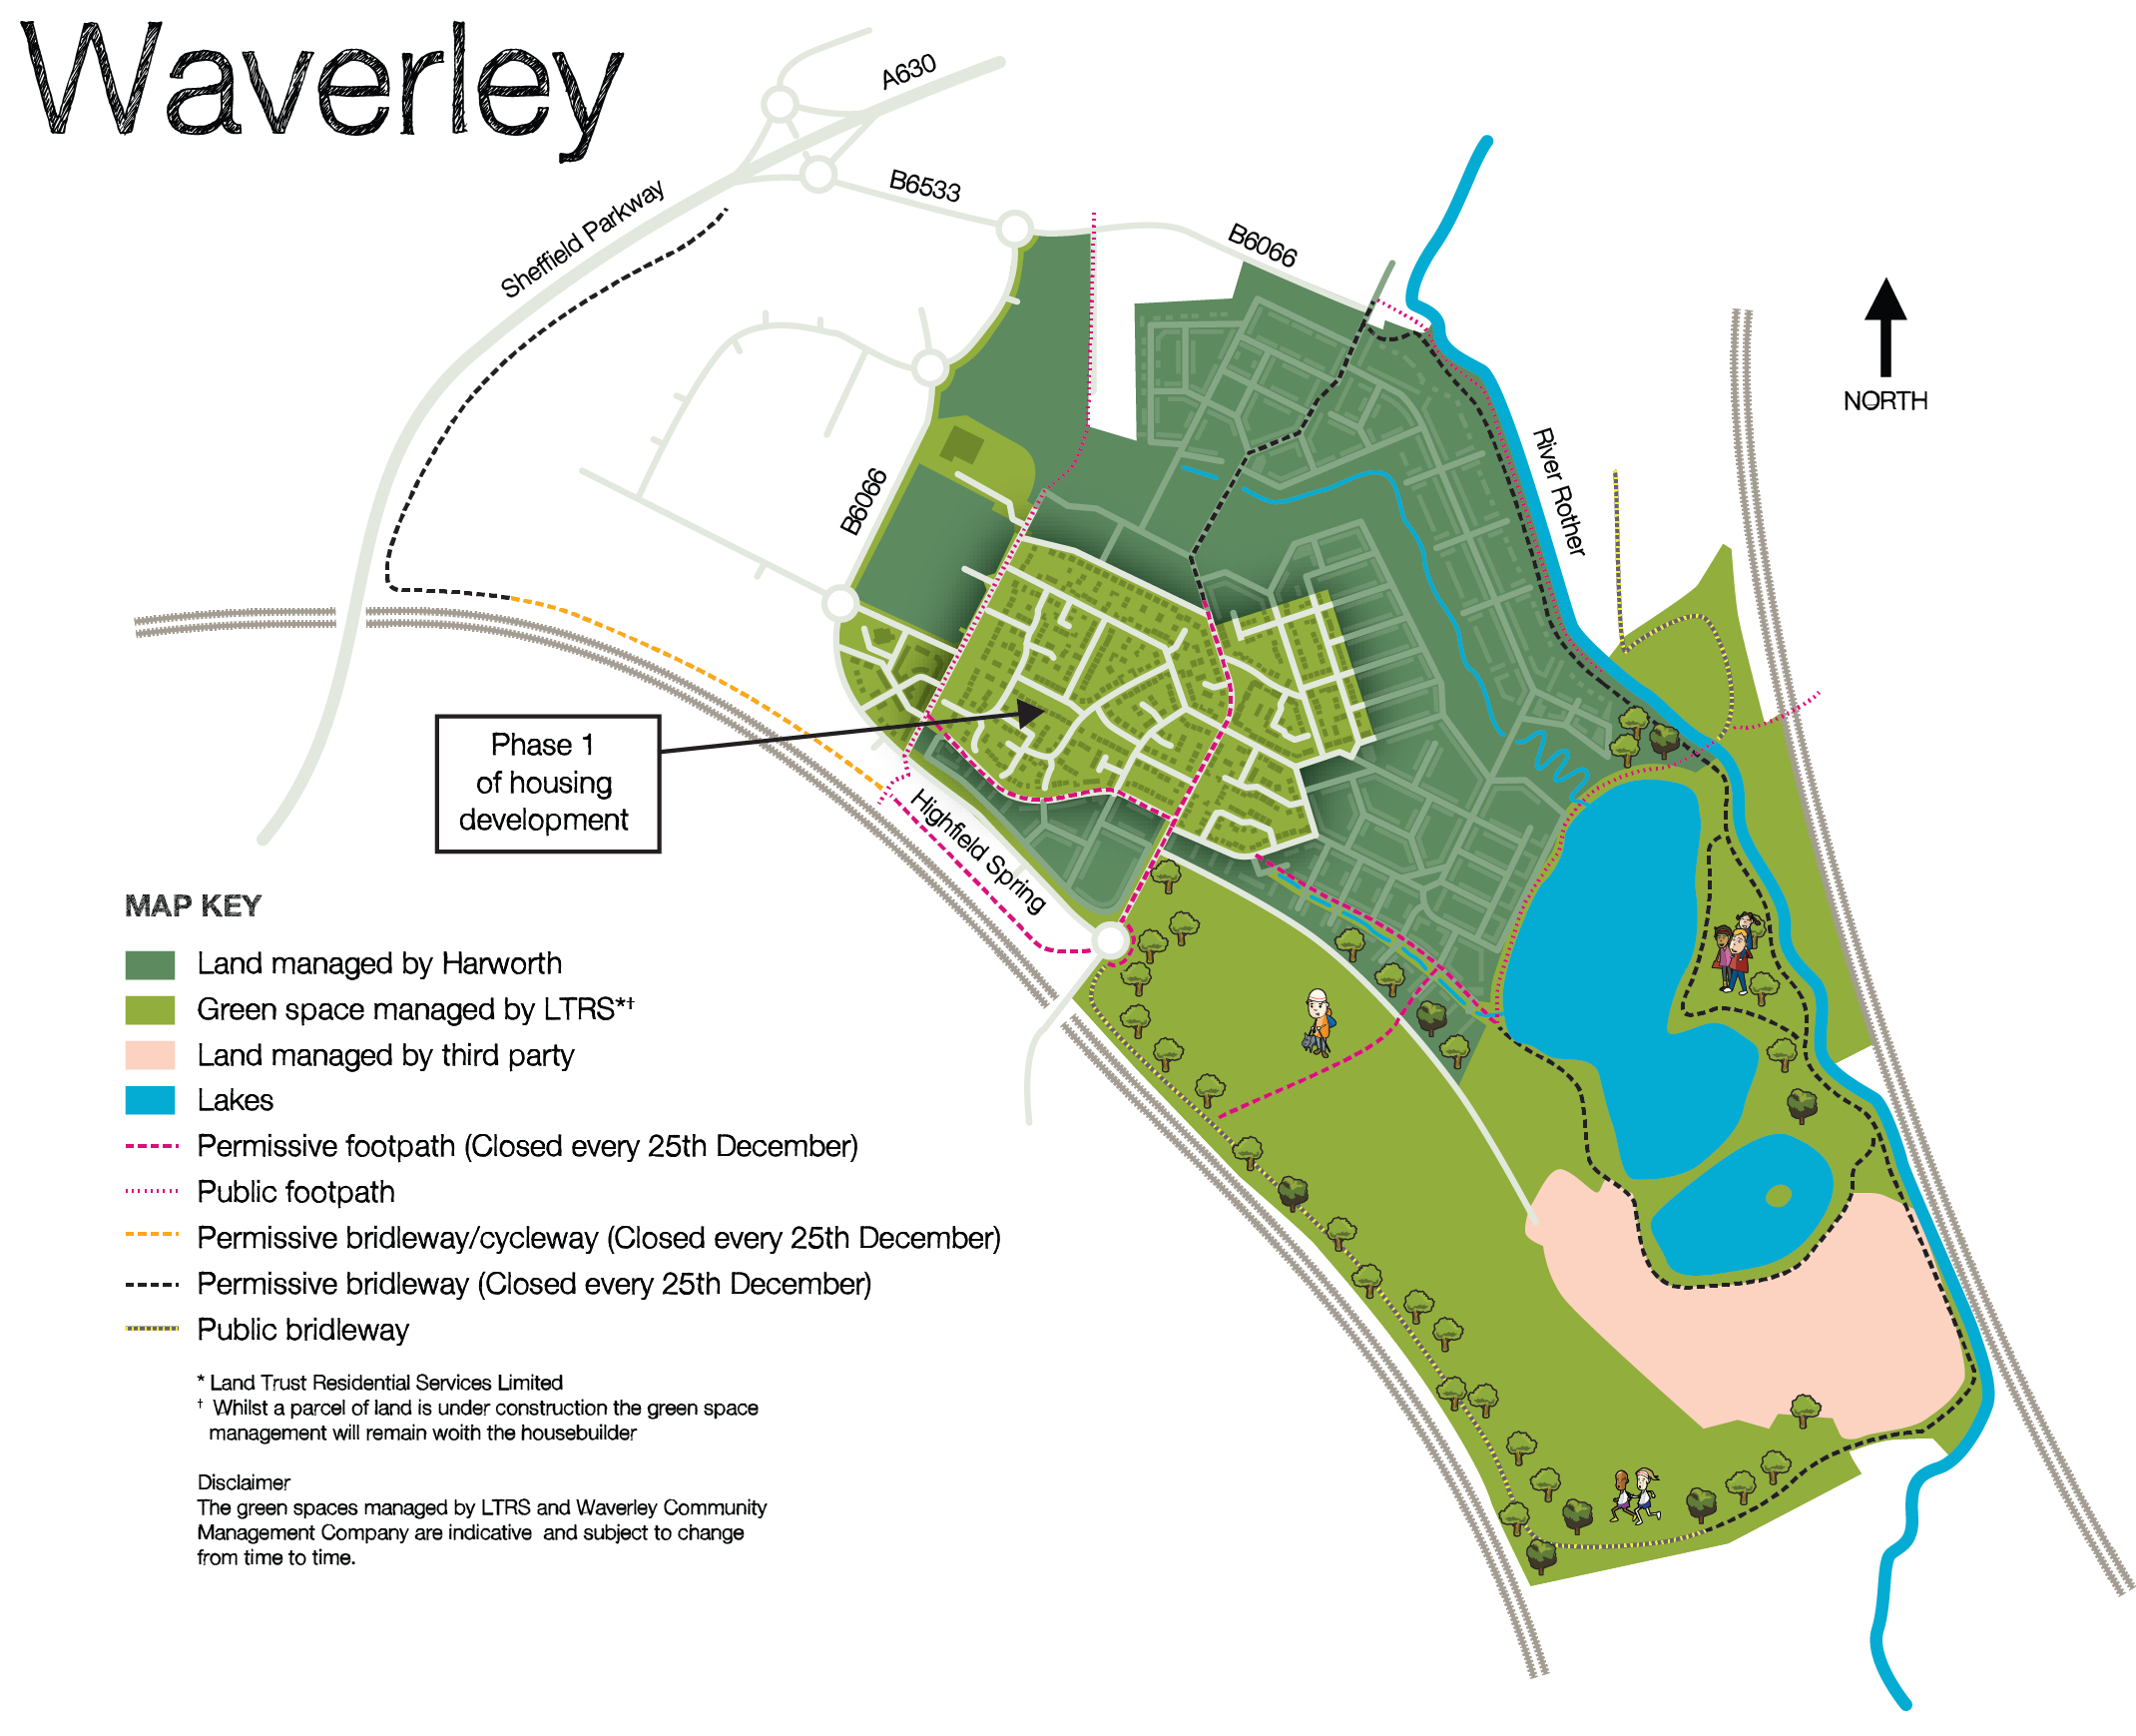 Waverley map